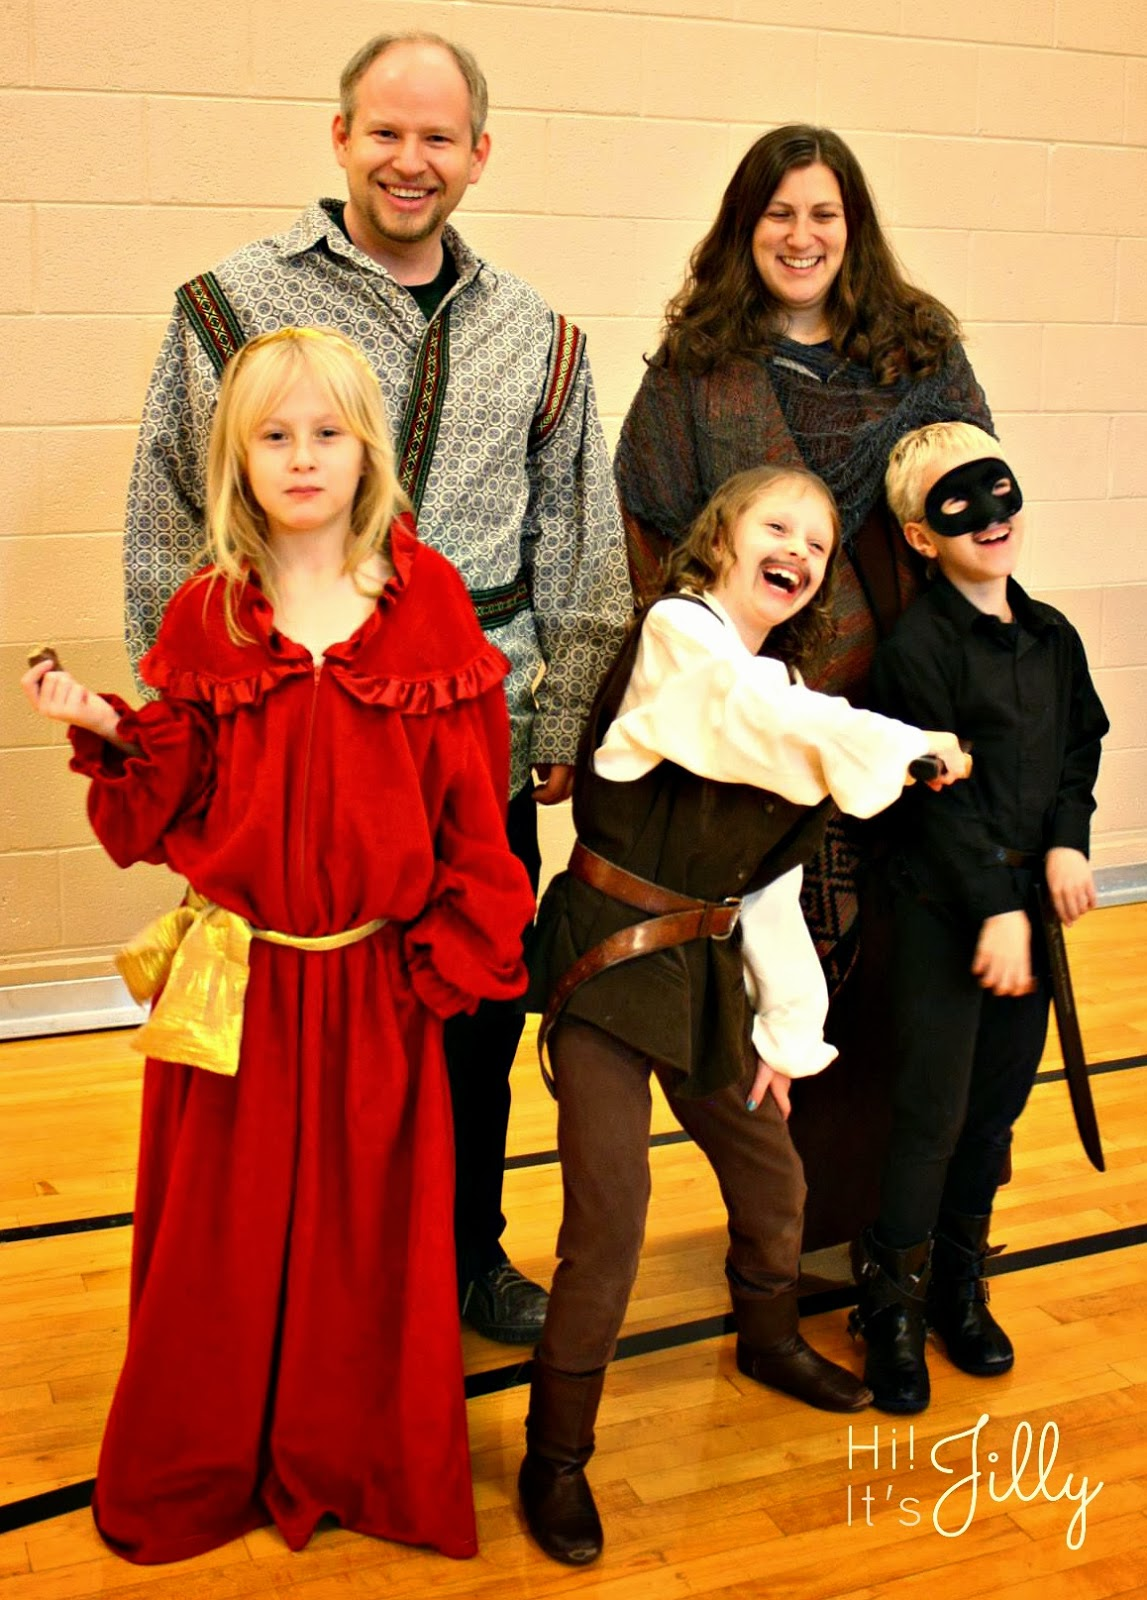 the princess bride costumes from hi its jilly costume halloween princessbride